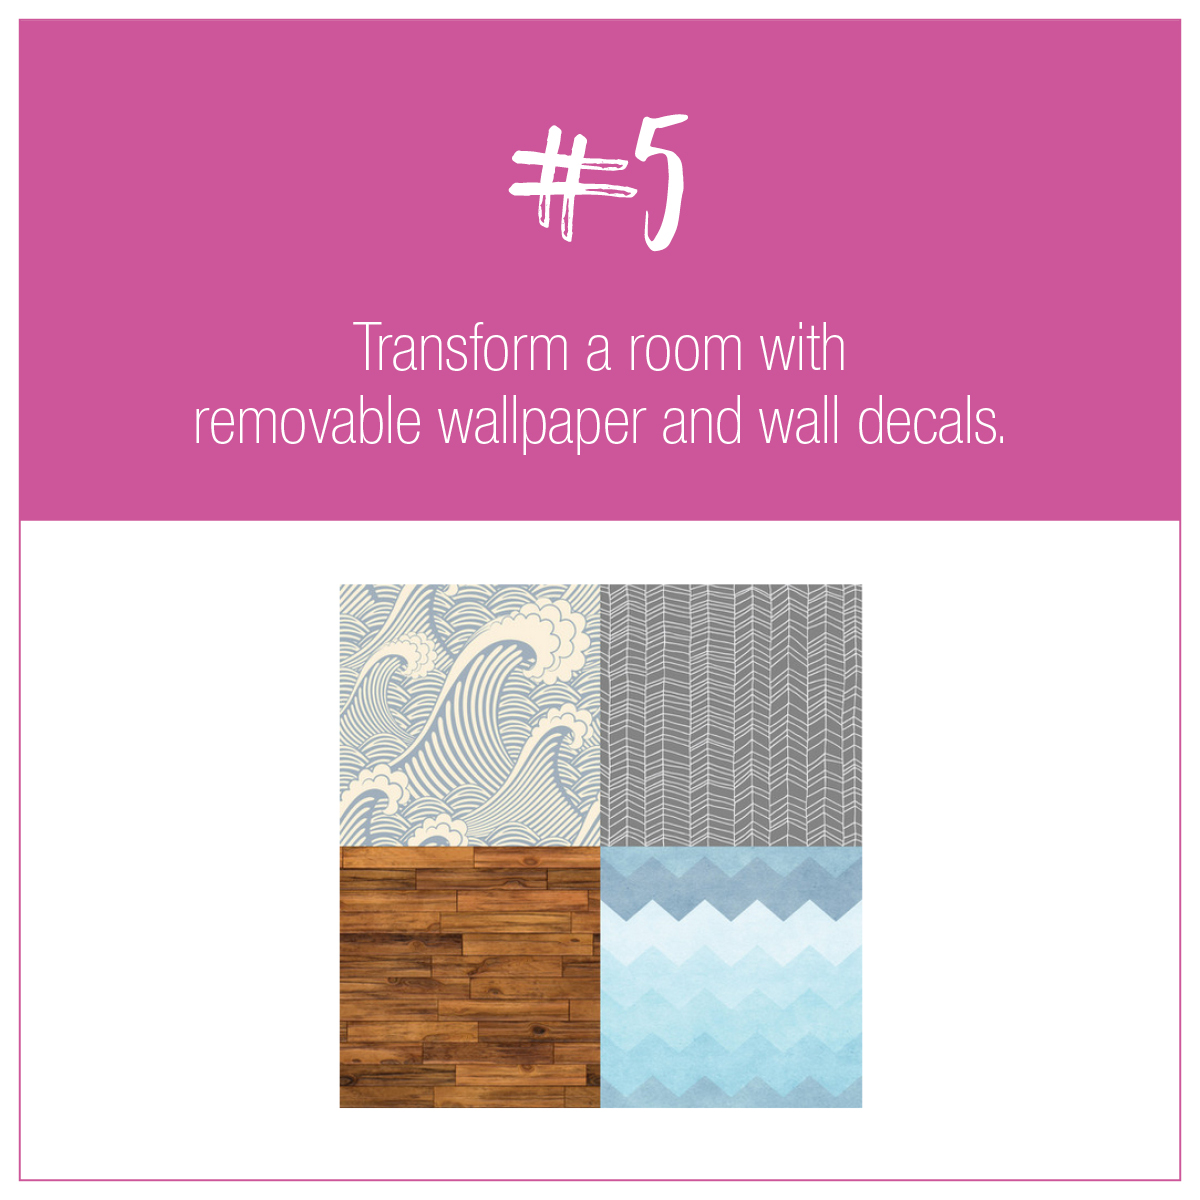 TIP 5: Removable Wallpaper and Wall Decals